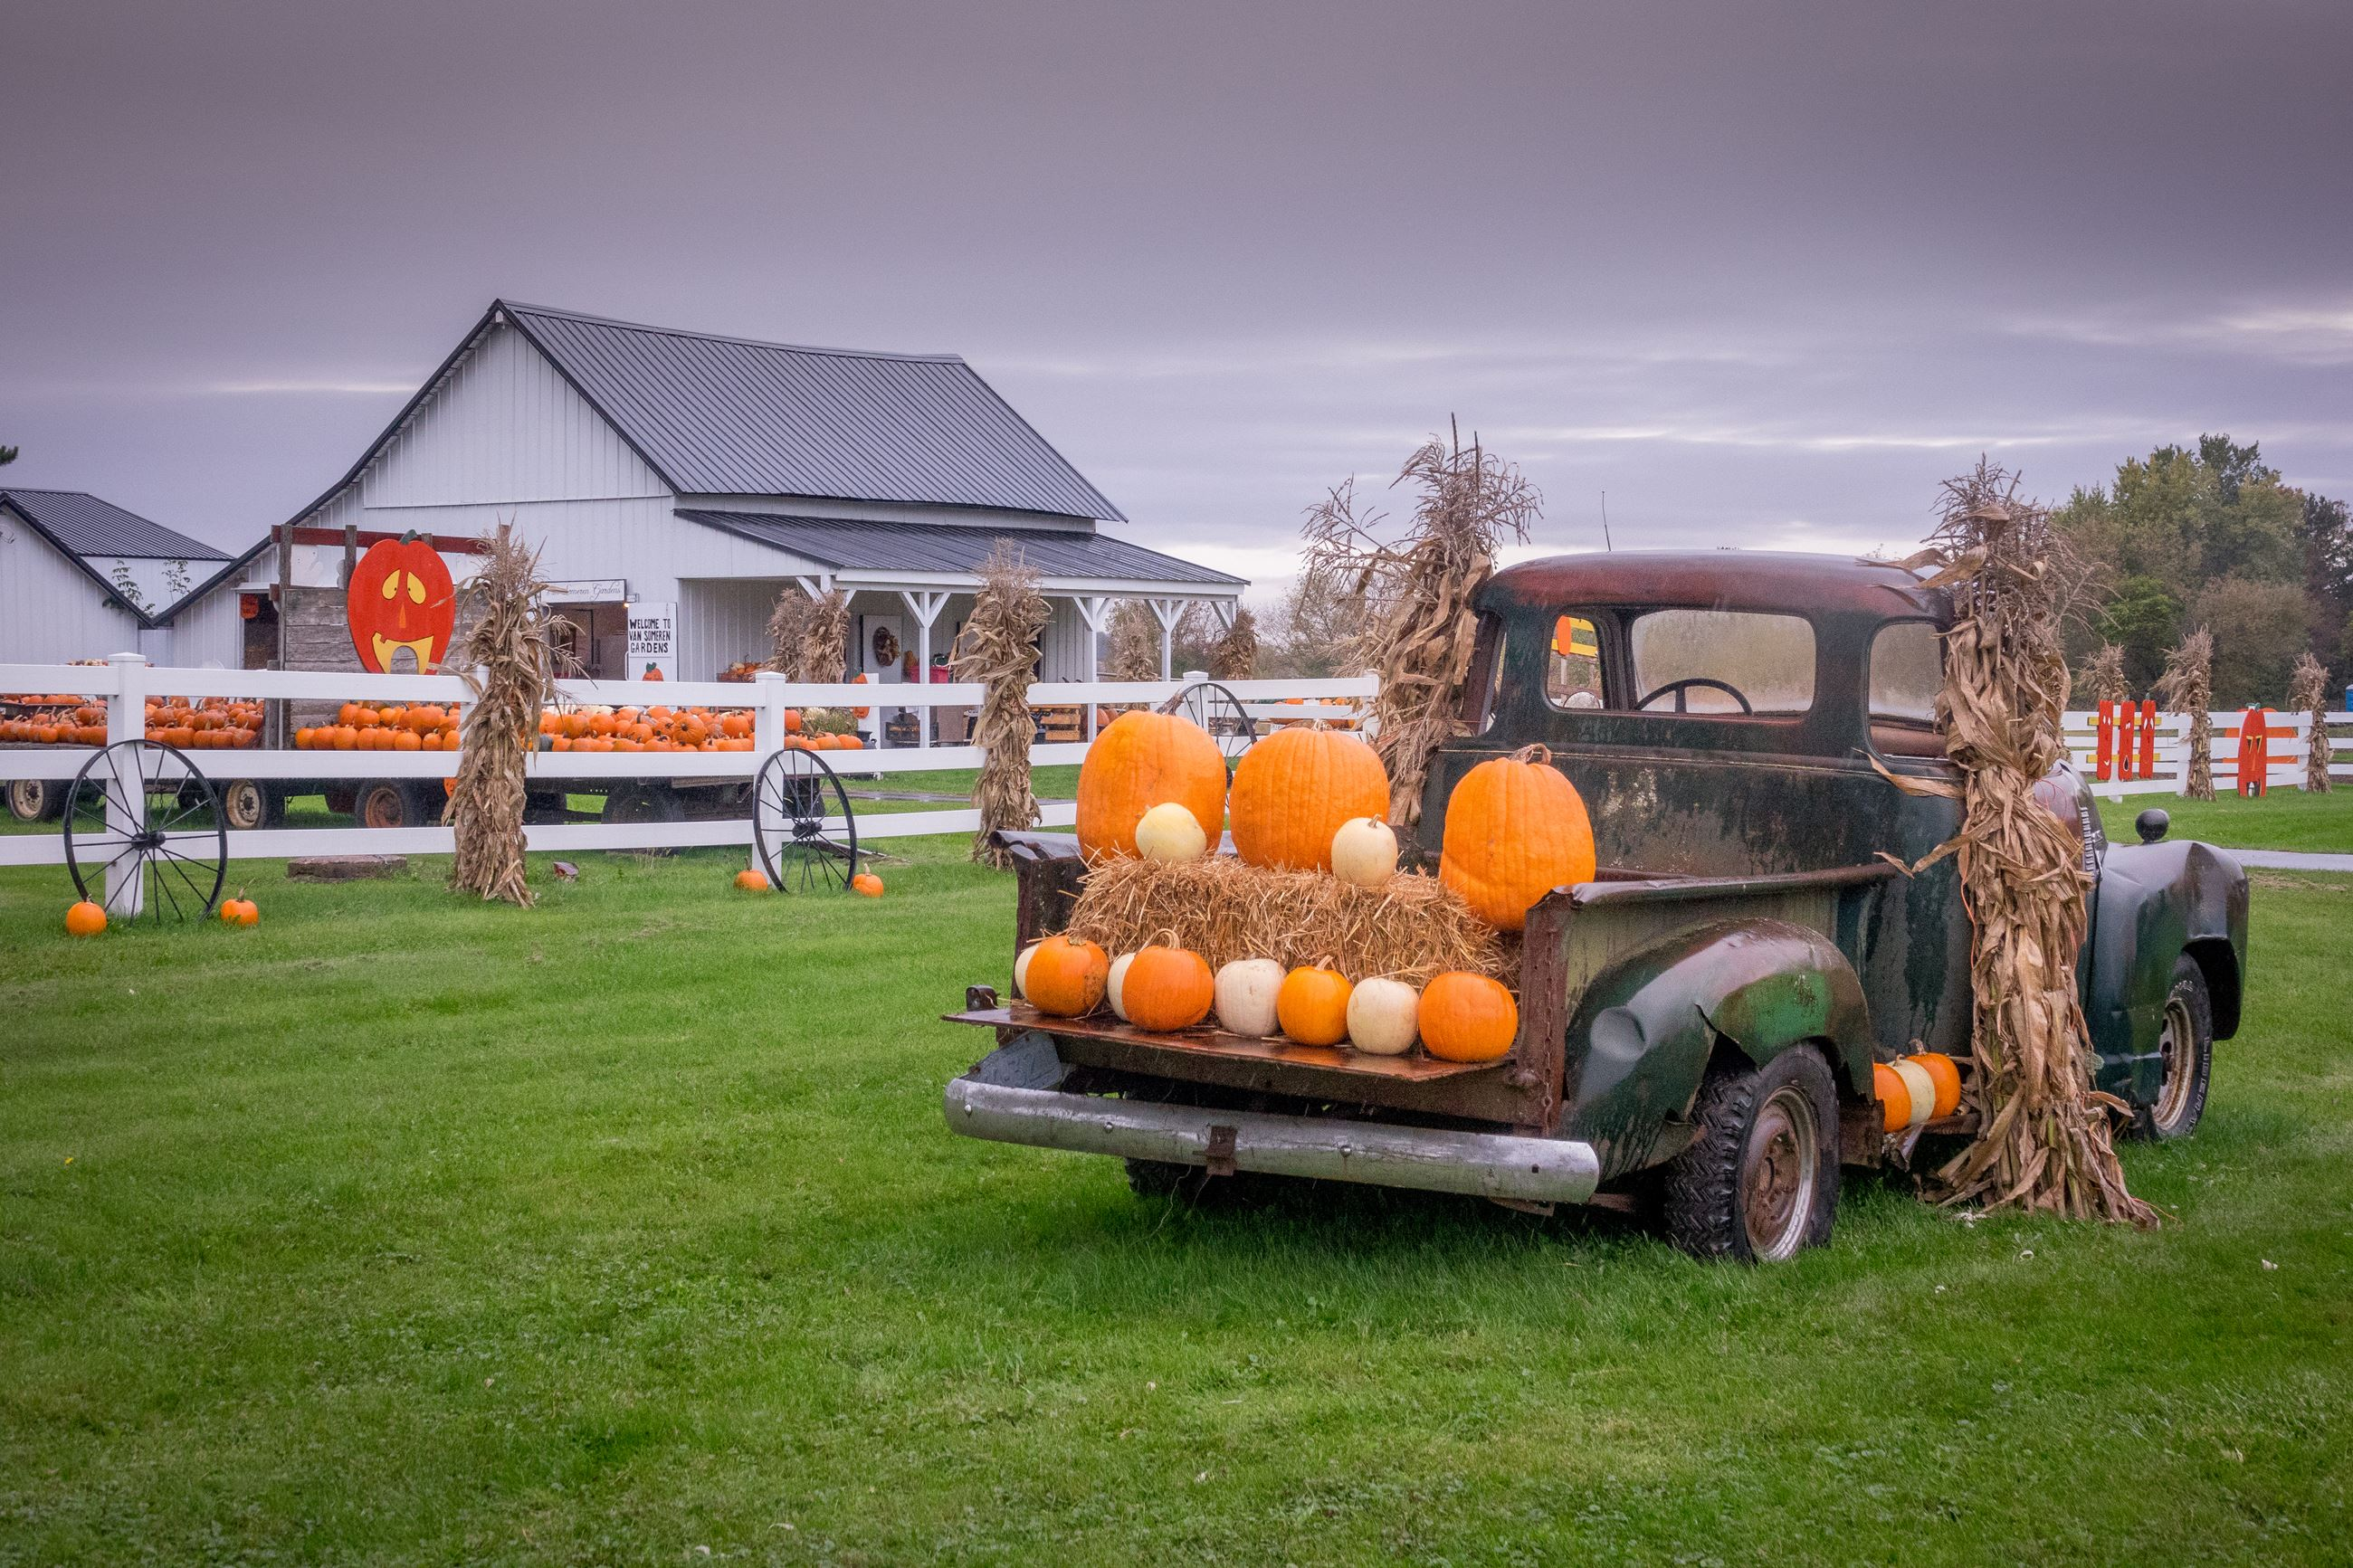 Pumpkins and Hay Bales in Back of Old Truck